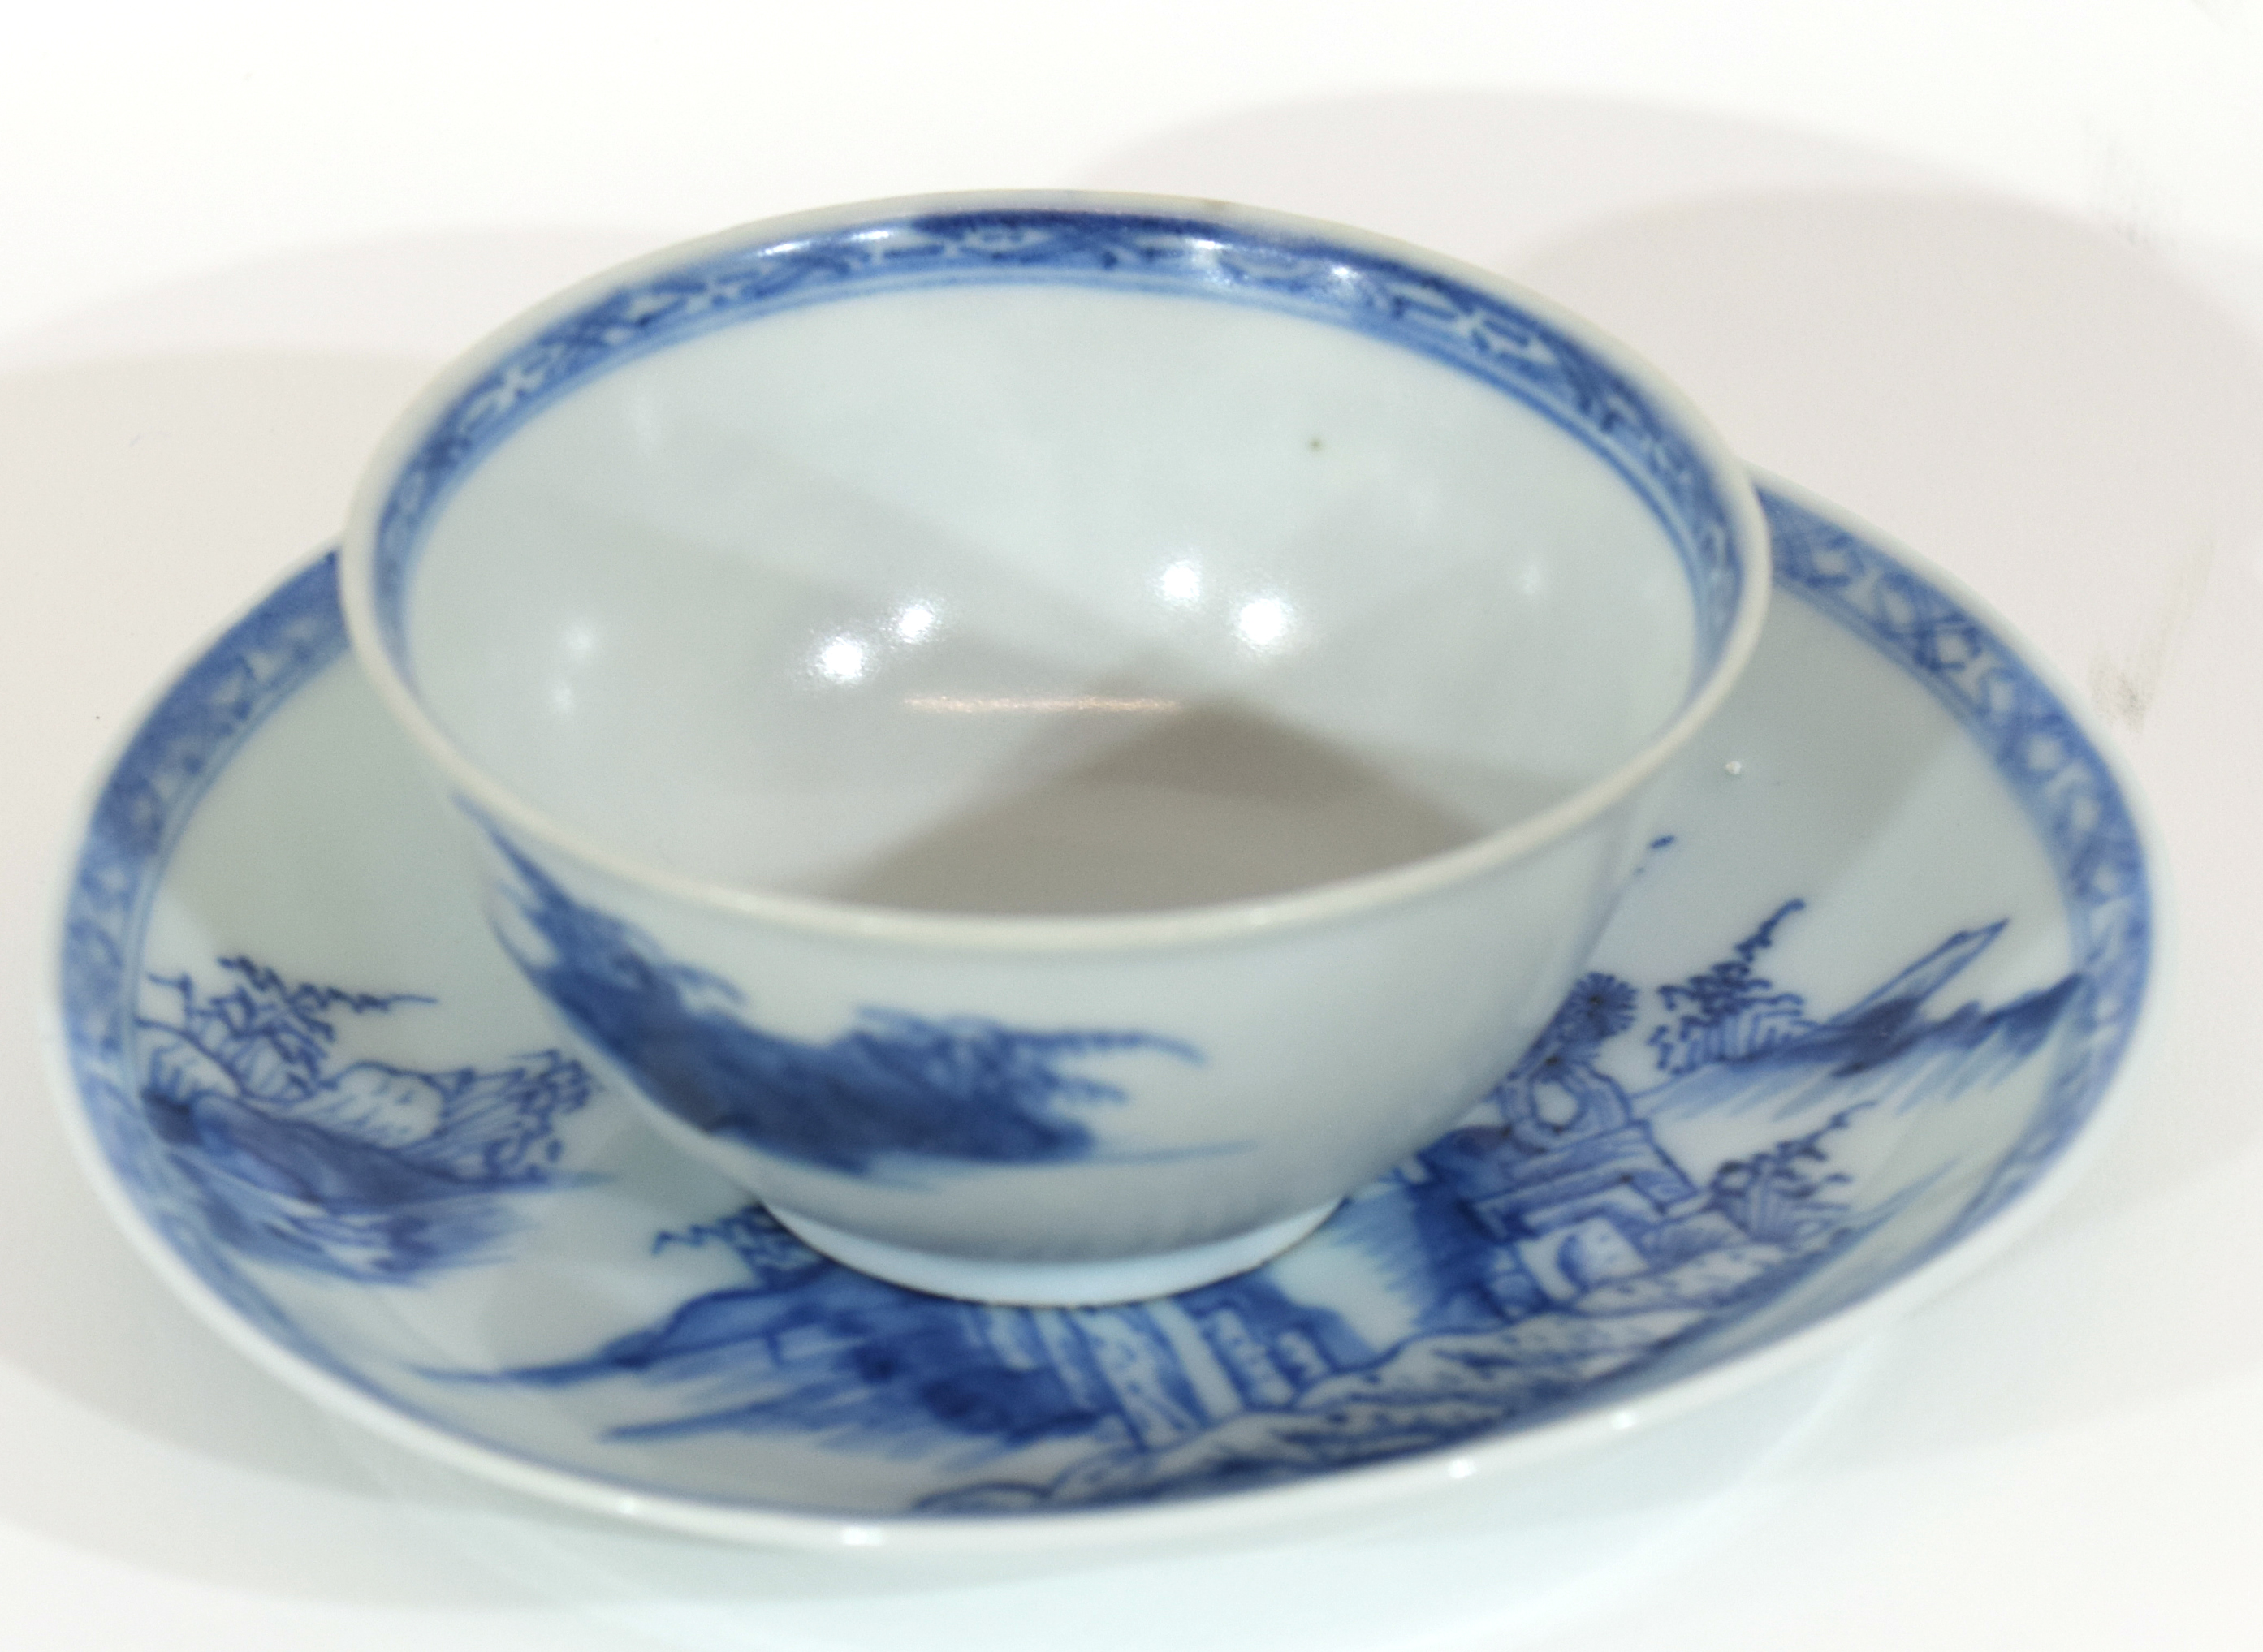 18th century Chinese porcelain Nanking Cargo tea bowl and saucer - Image 2 of 15